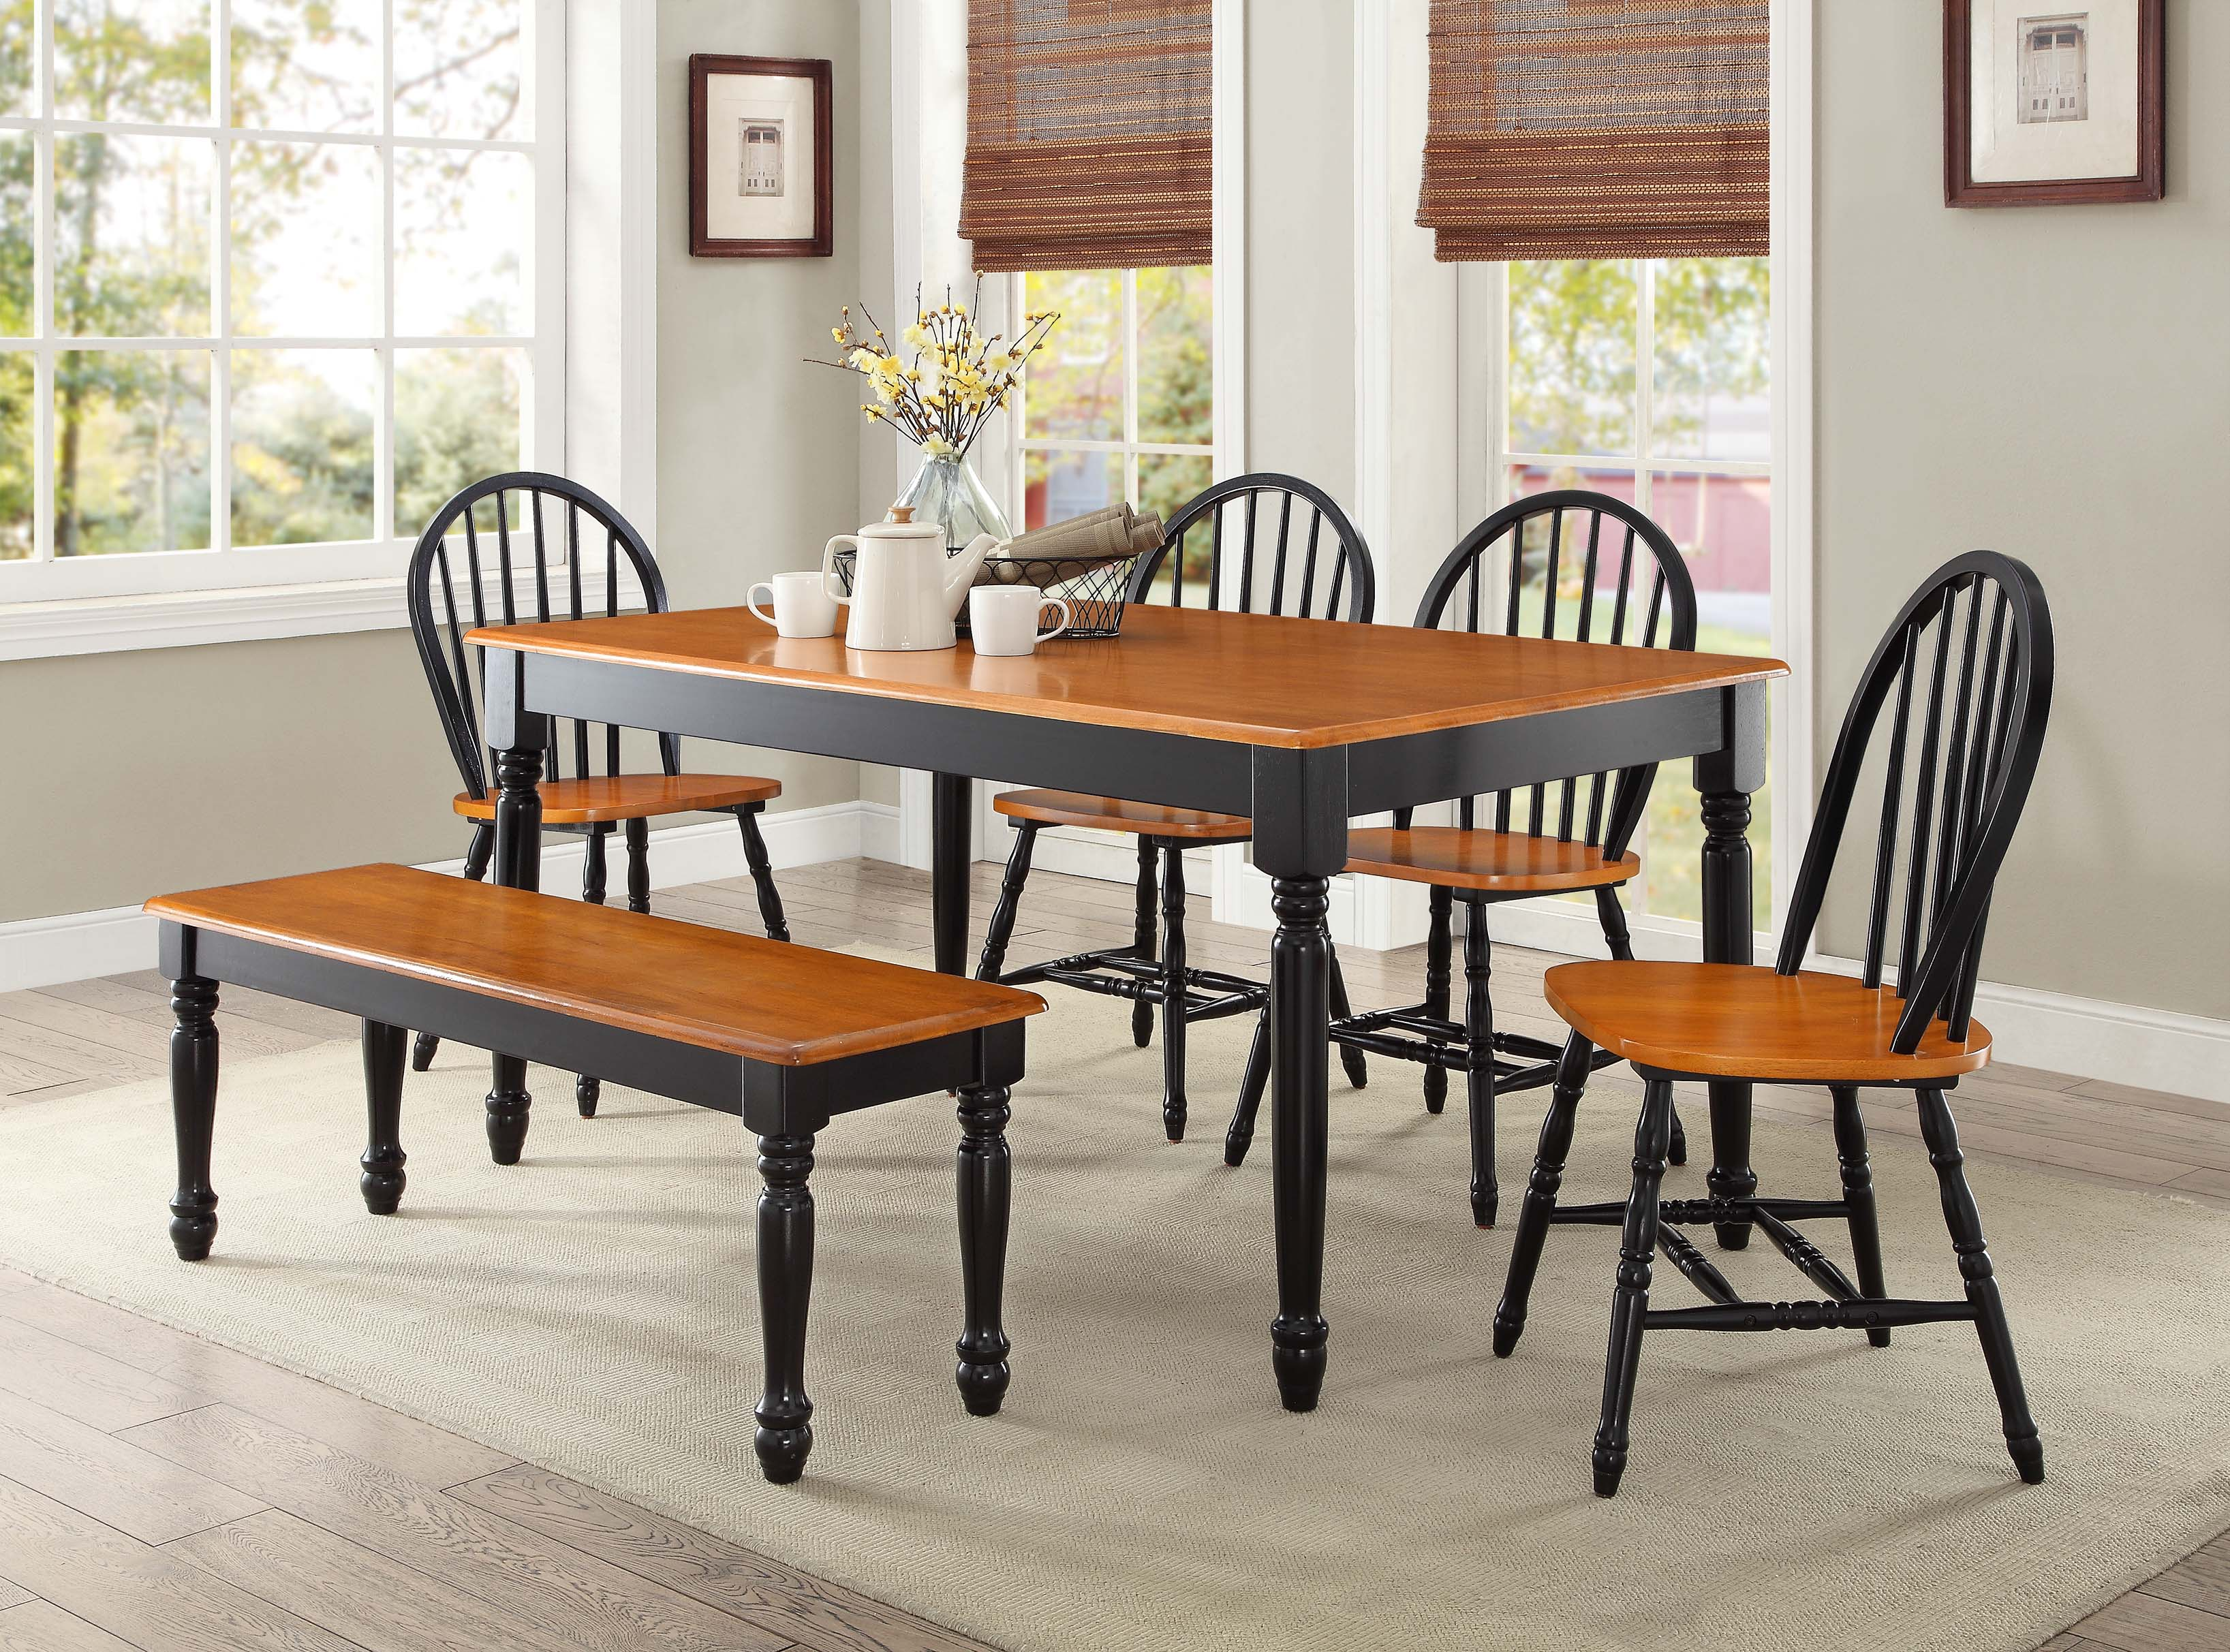 Kitchen Set Furniture Better Homes And Gardens Autumn Lane 5 Piece Dining Set Black And